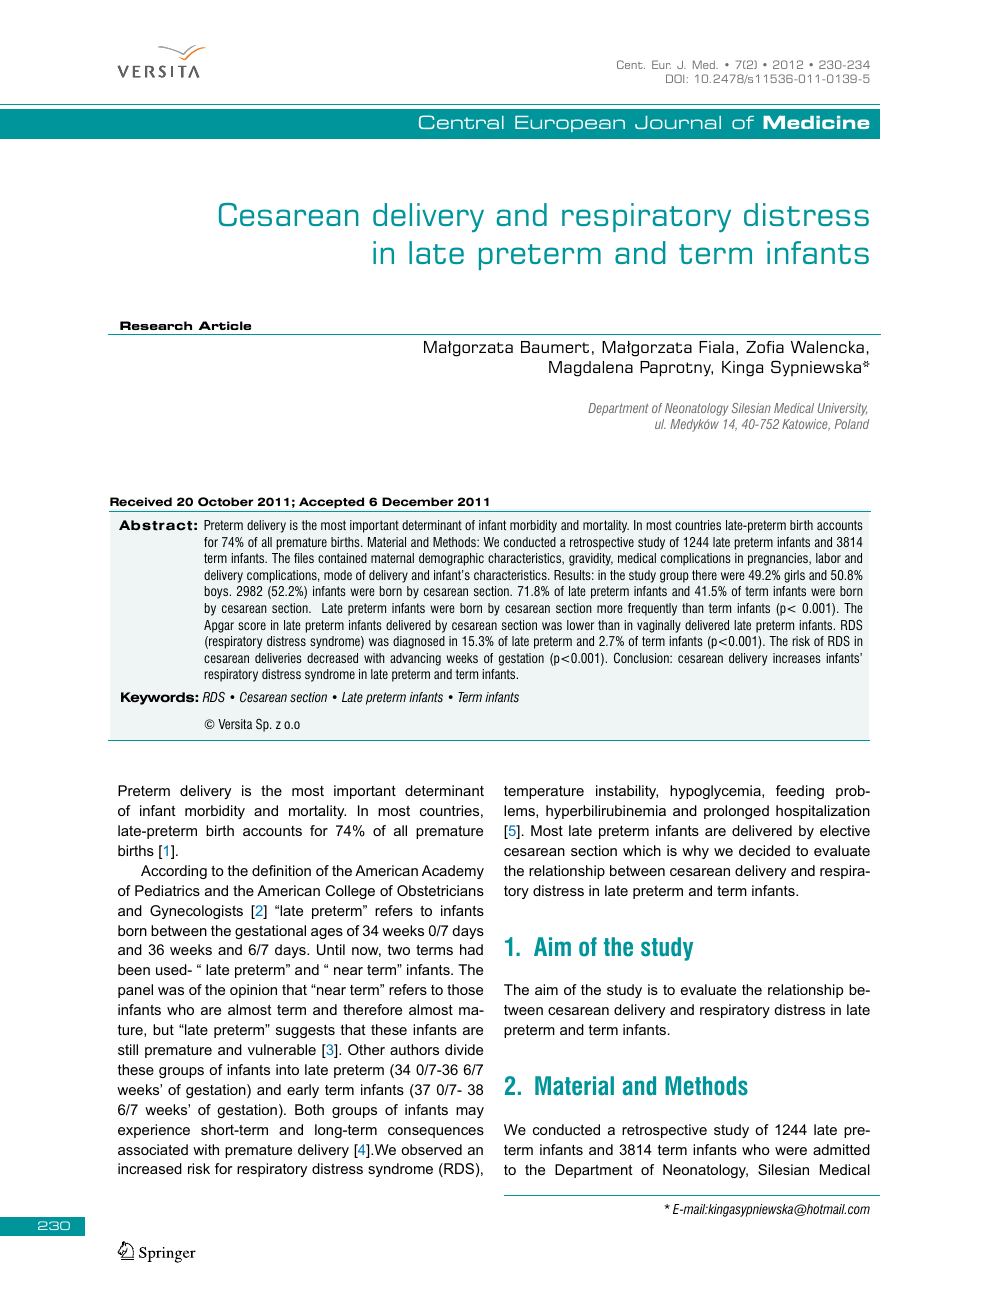 Cesarean delivery and respiratory distress in late preterm